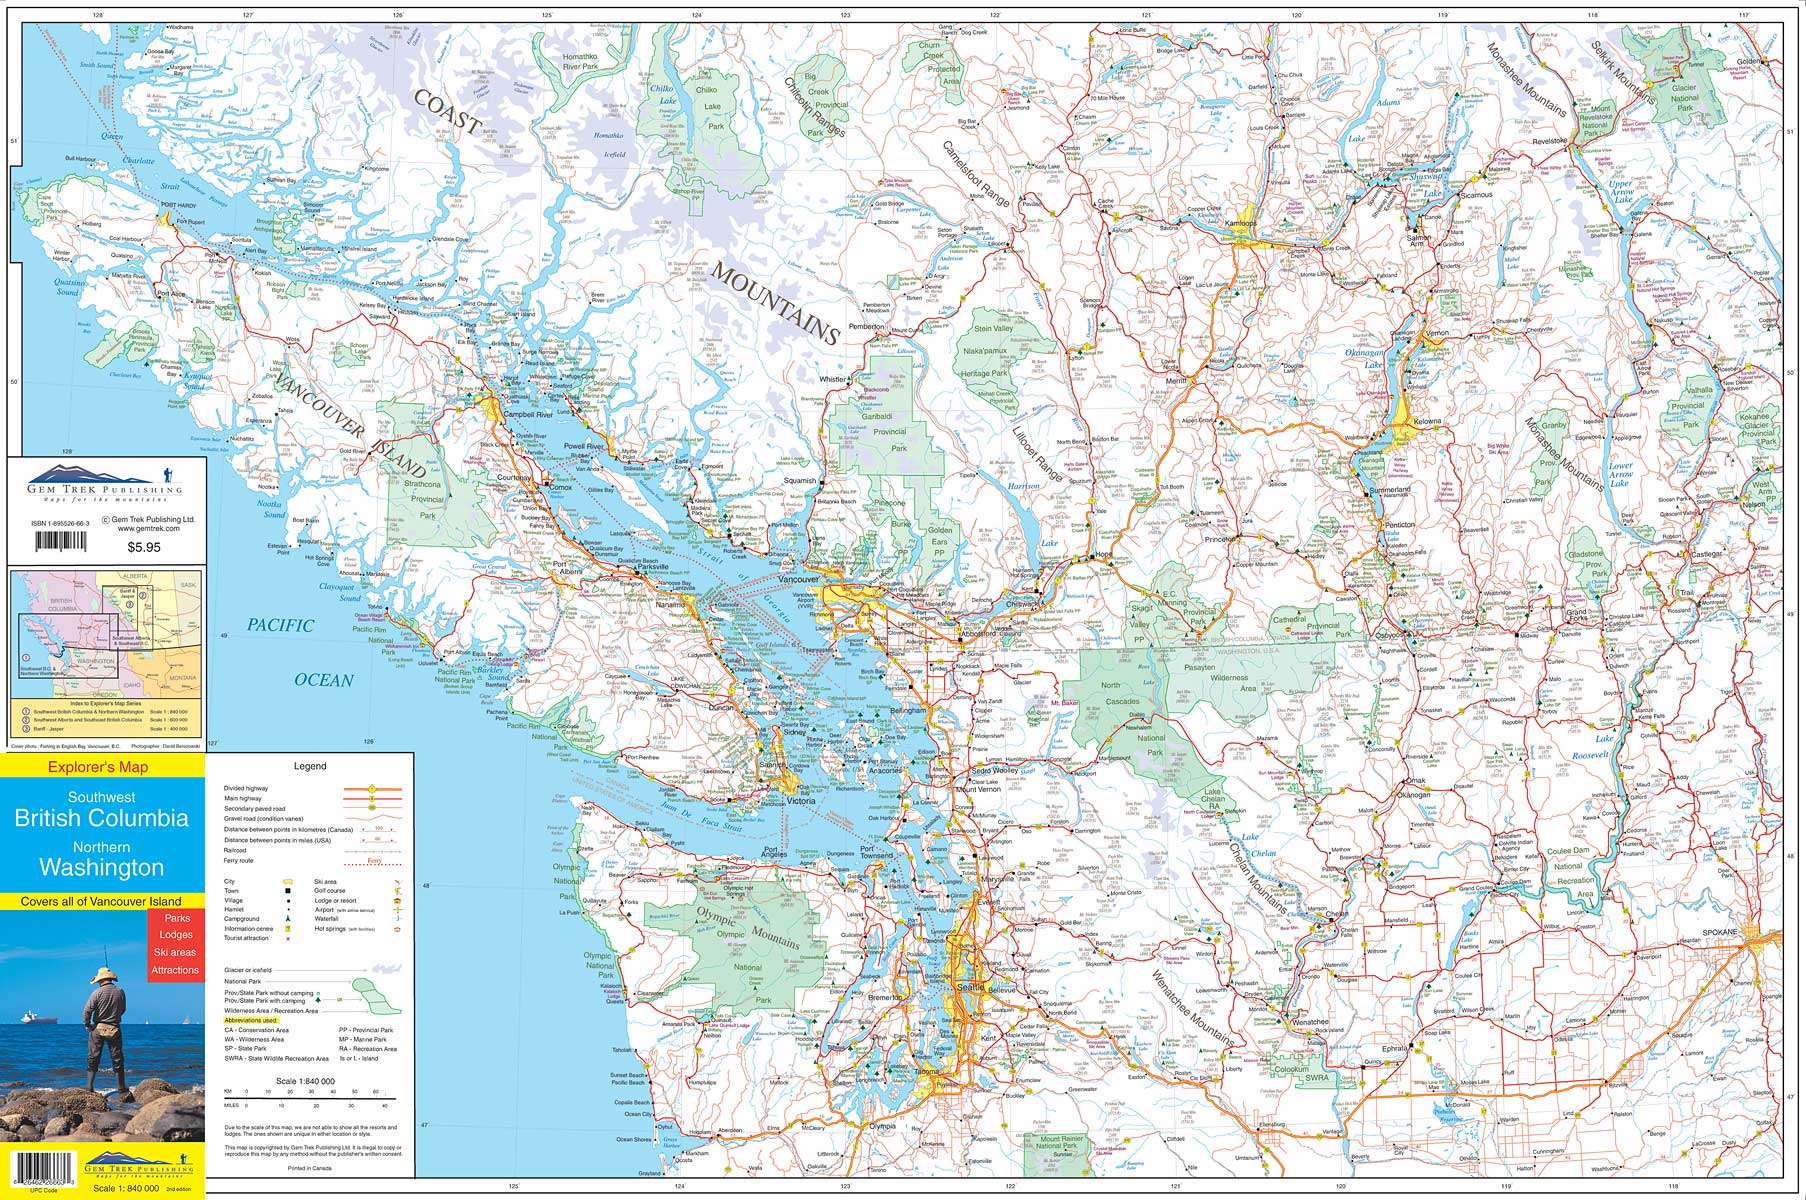 Southwest British Columbia & Northern Washington Map